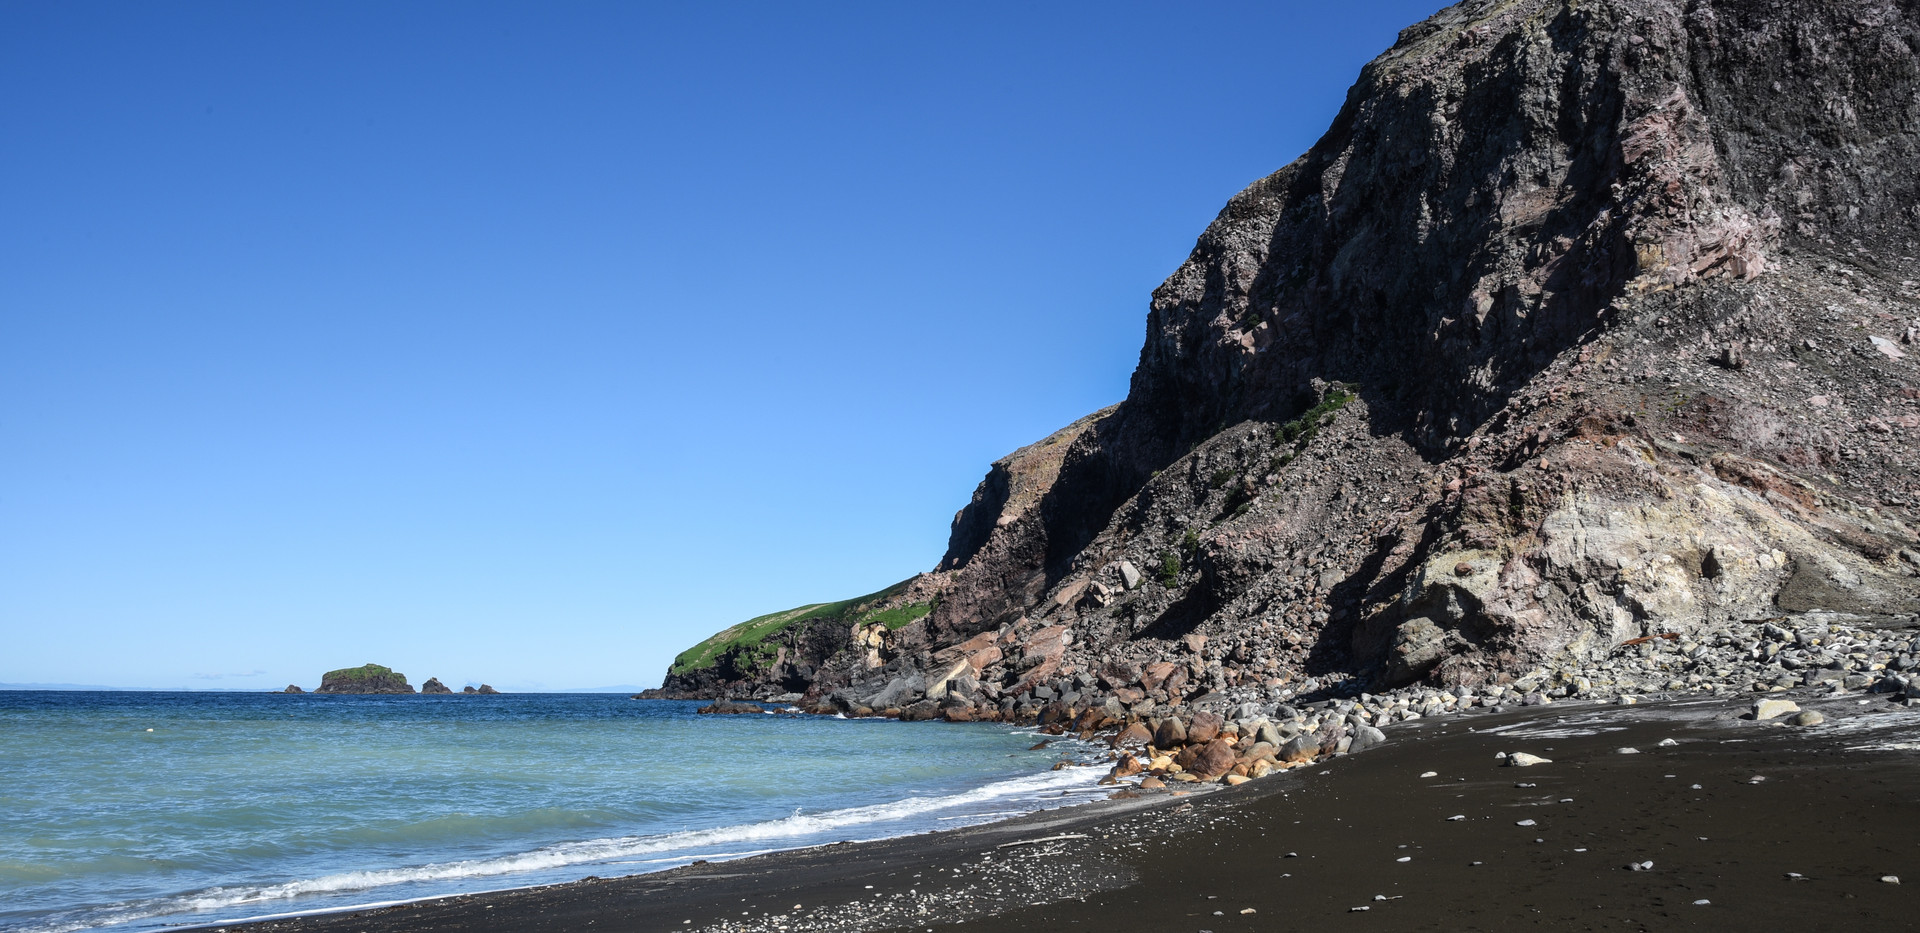 Typical Black Sand